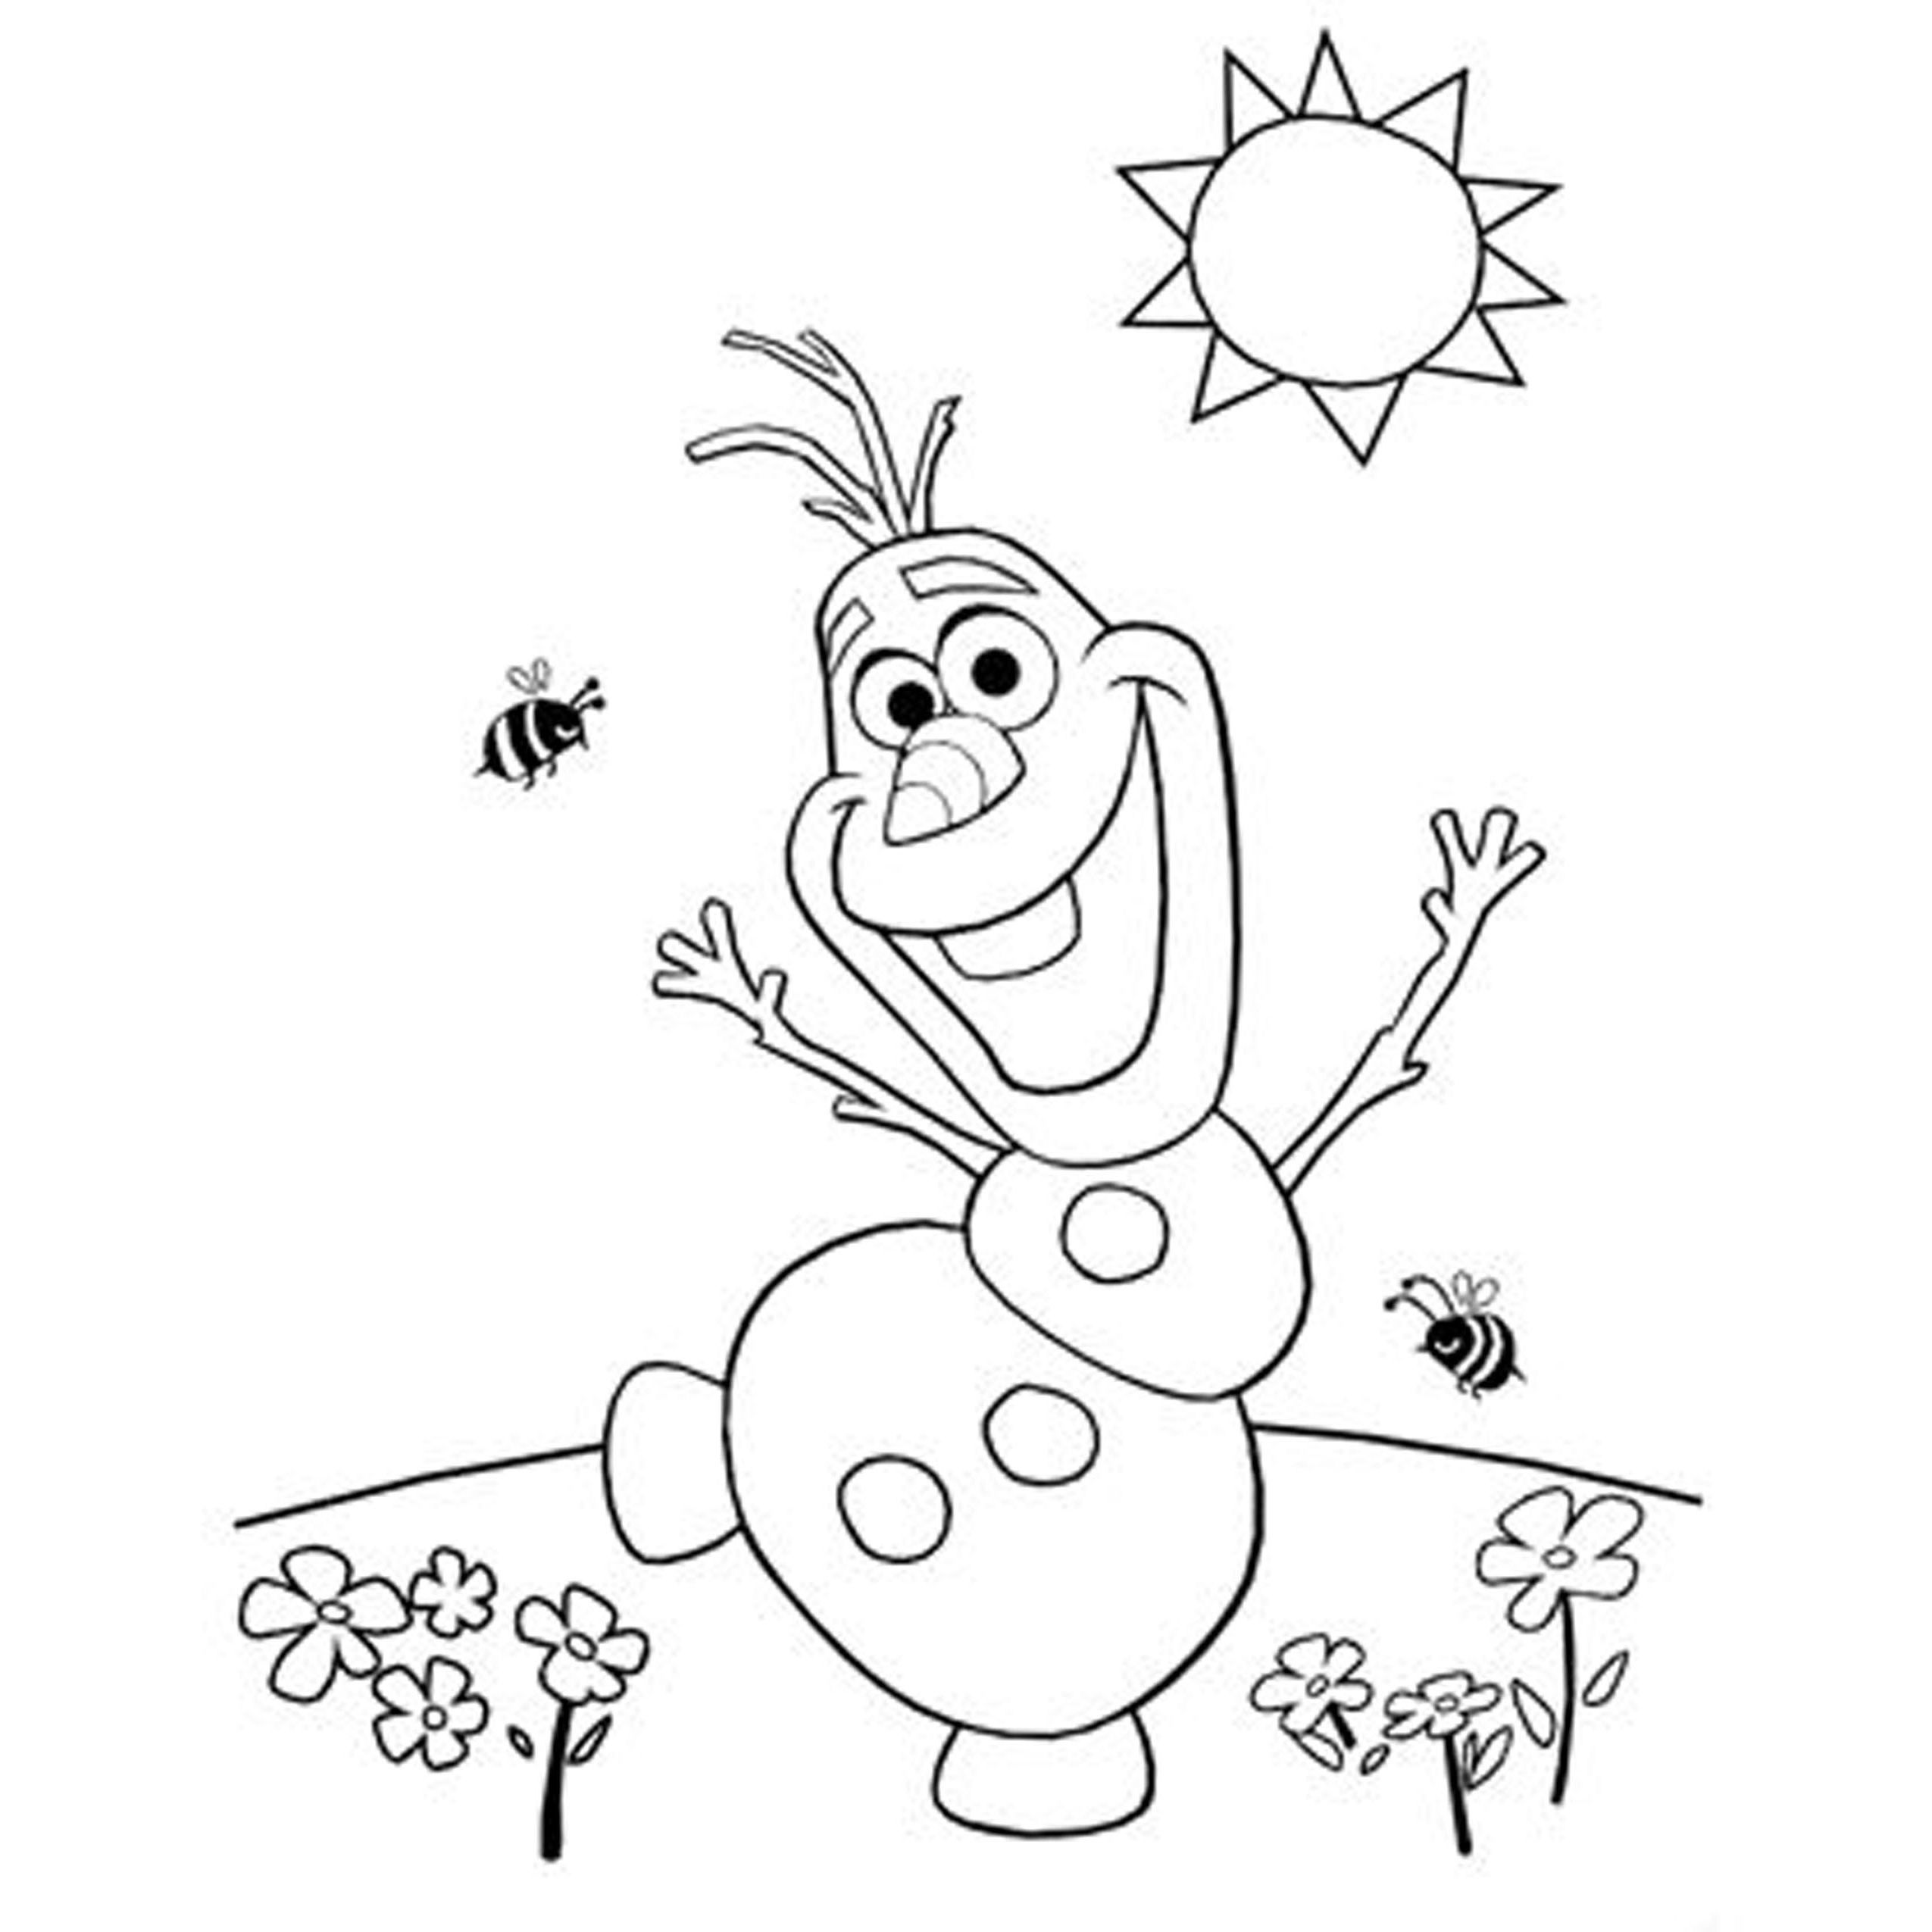 olaf coloring sheets free free olaf coloring pages for kids printable sea4waterman olaf free sheets coloring